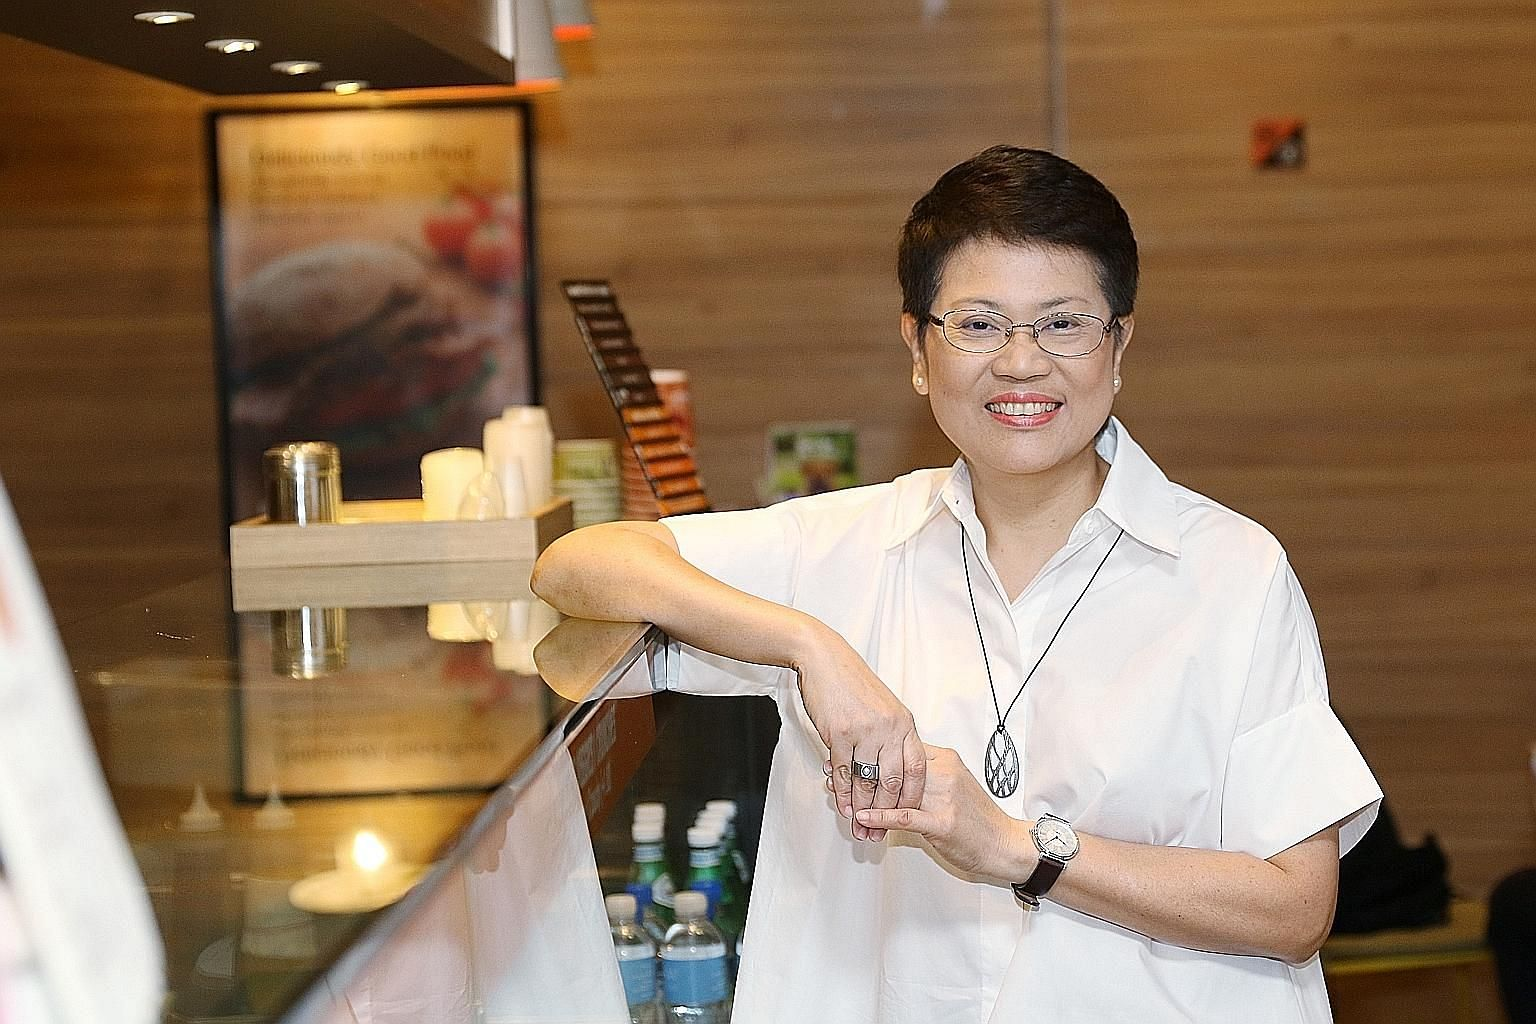 Ms Yeap Cheng Guat learnt how to bake from her late mother. She could bake cakes on her own at eight years old.